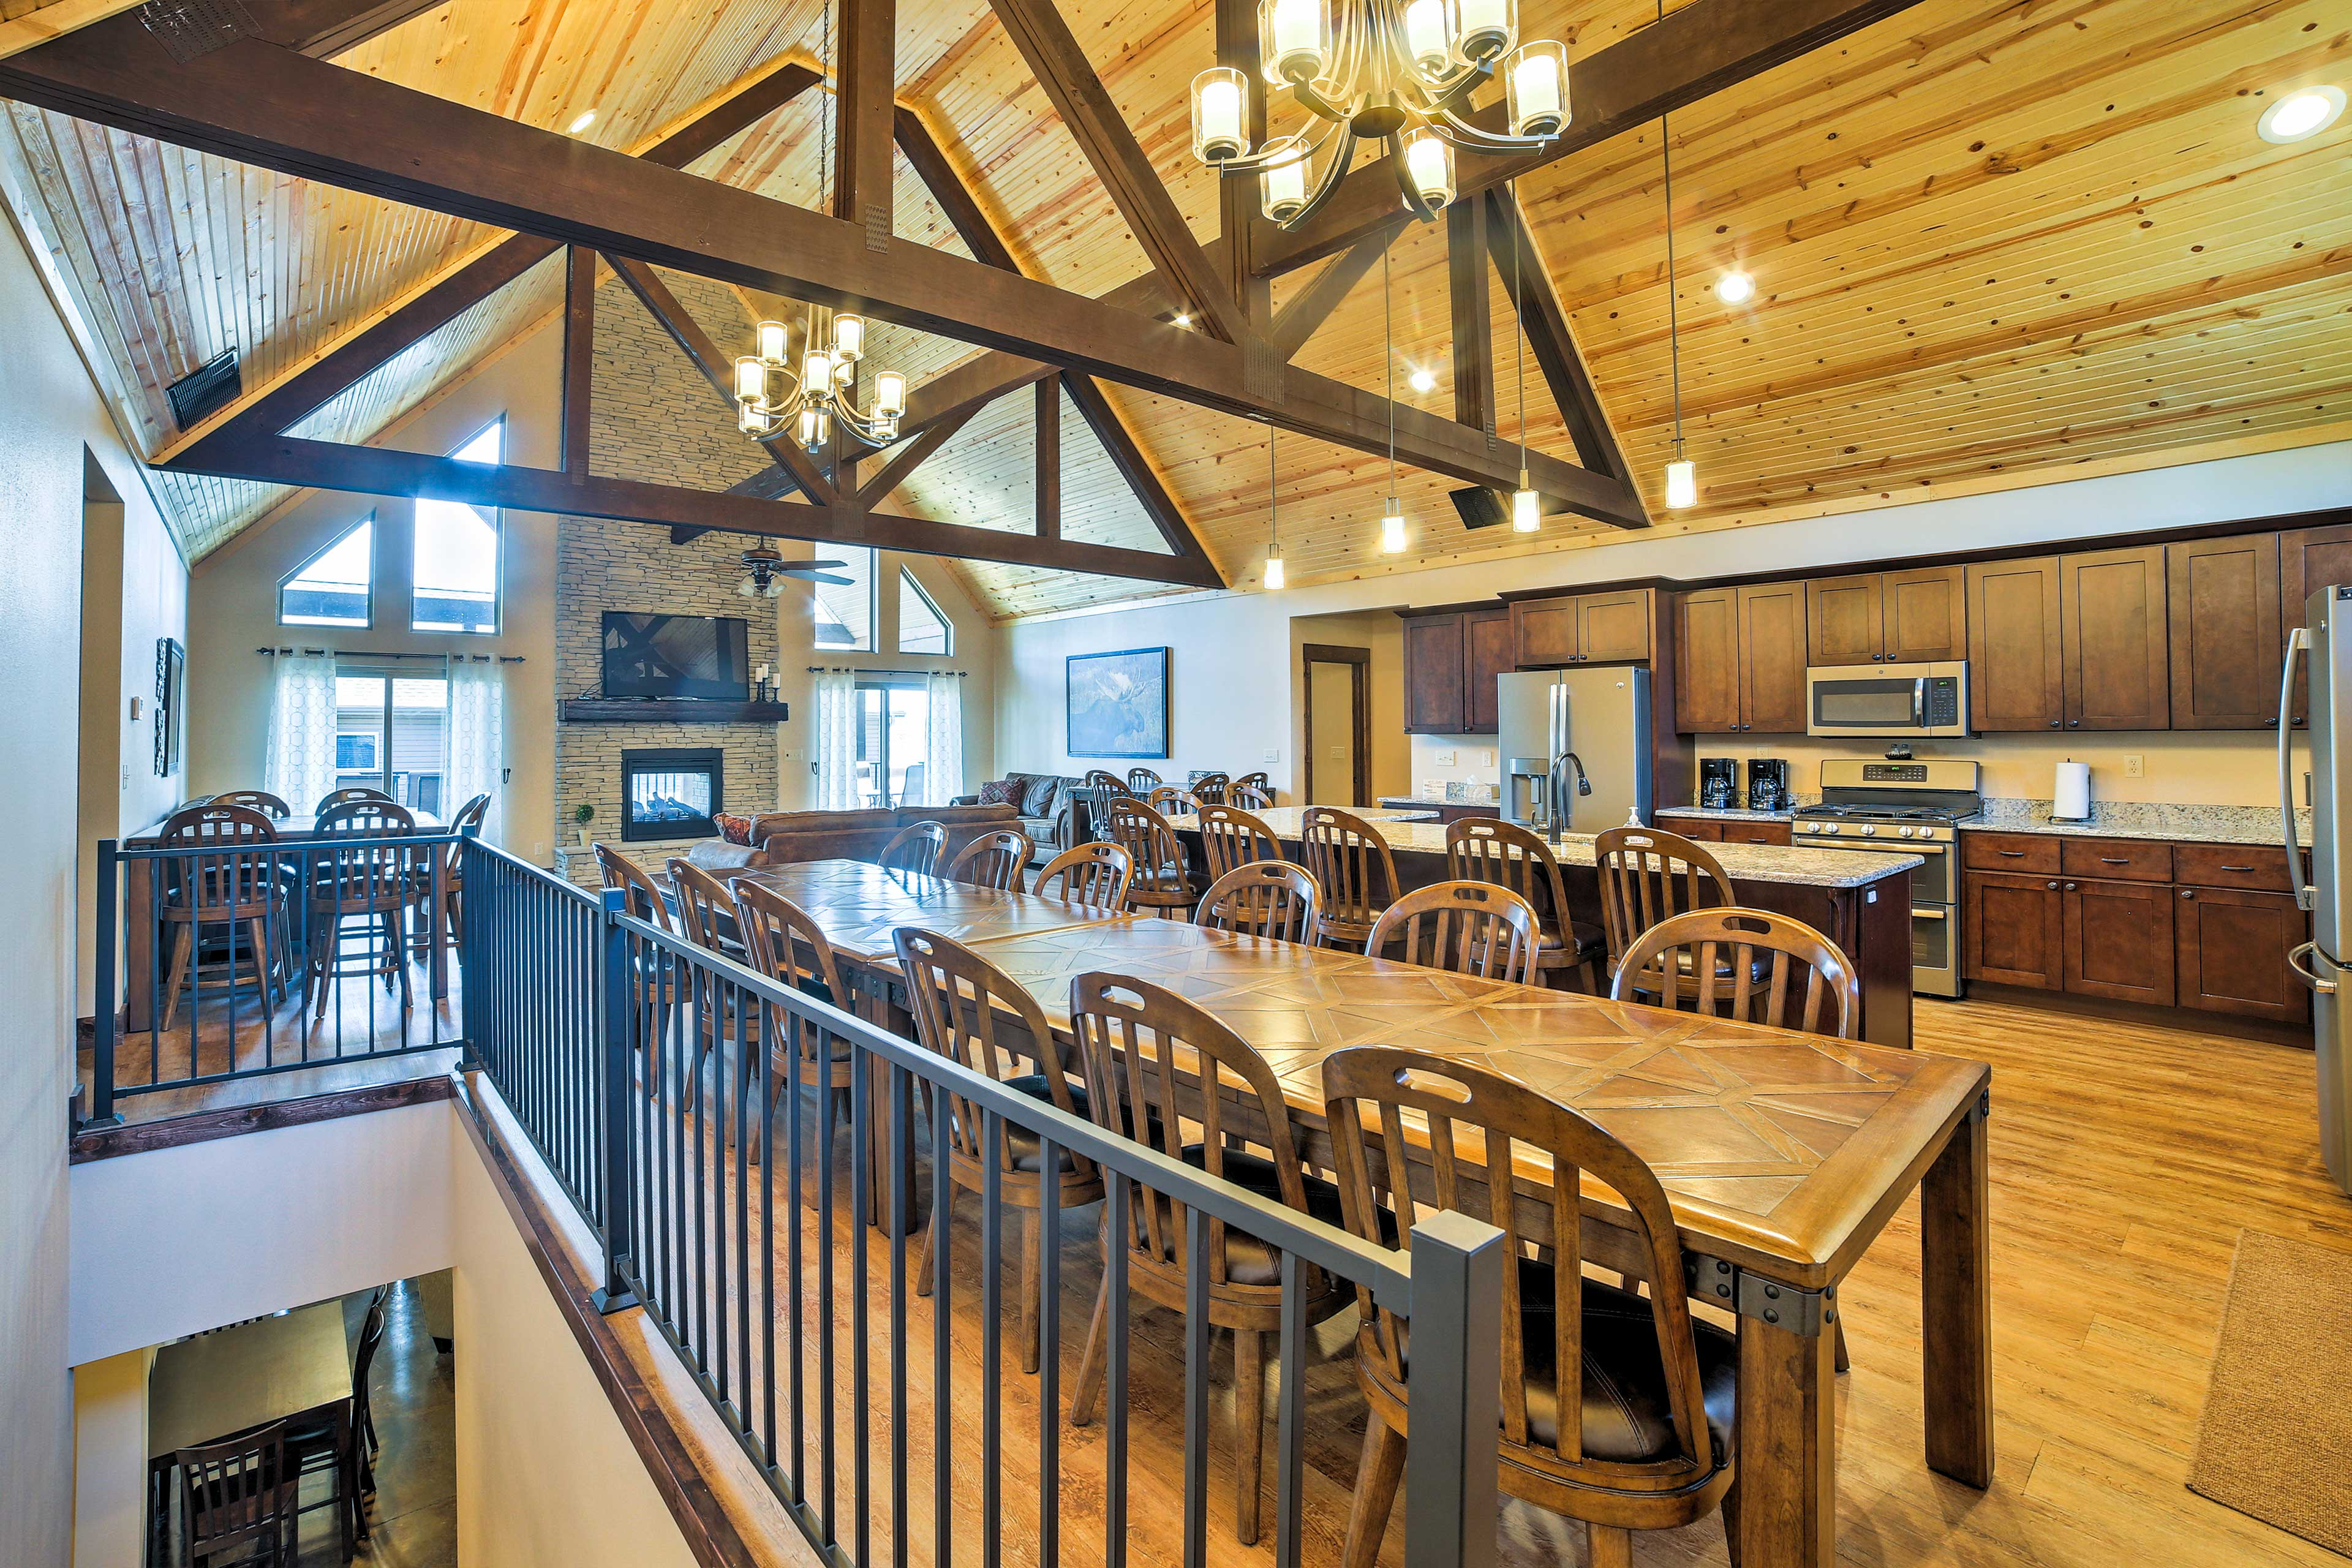 Eat in at this long dining room table with seating for 12.